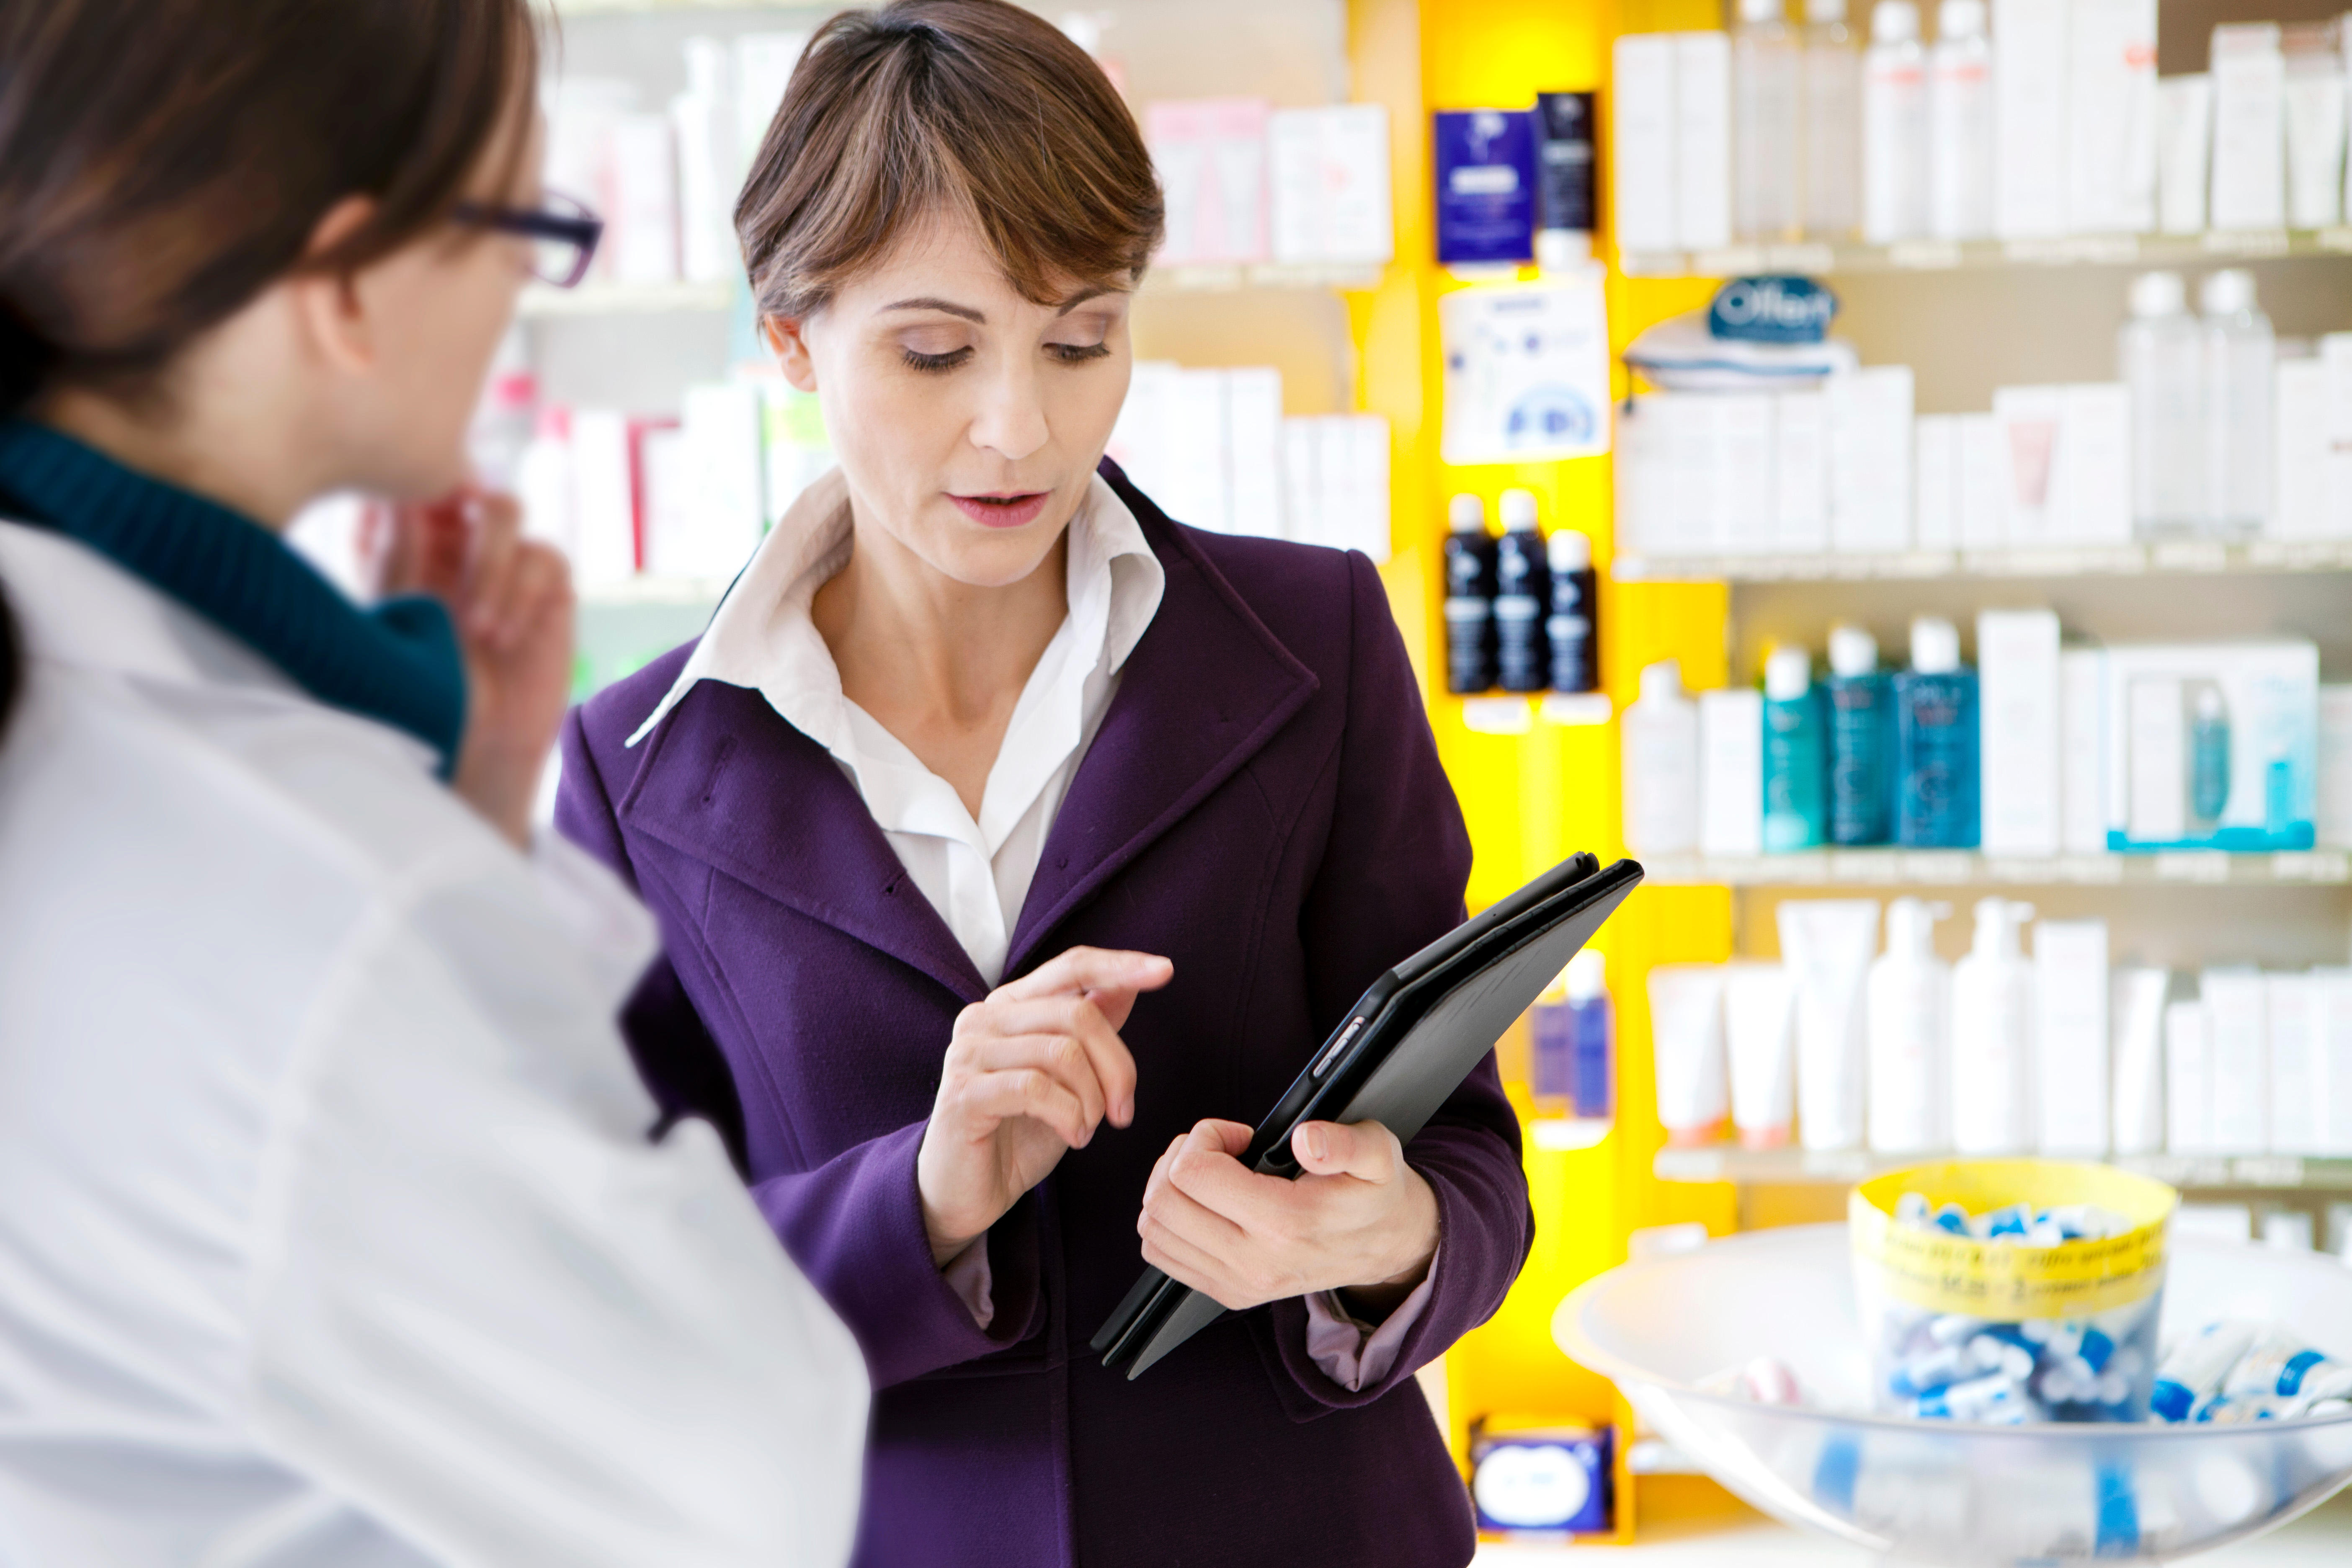 Pharmaceutical sales representative